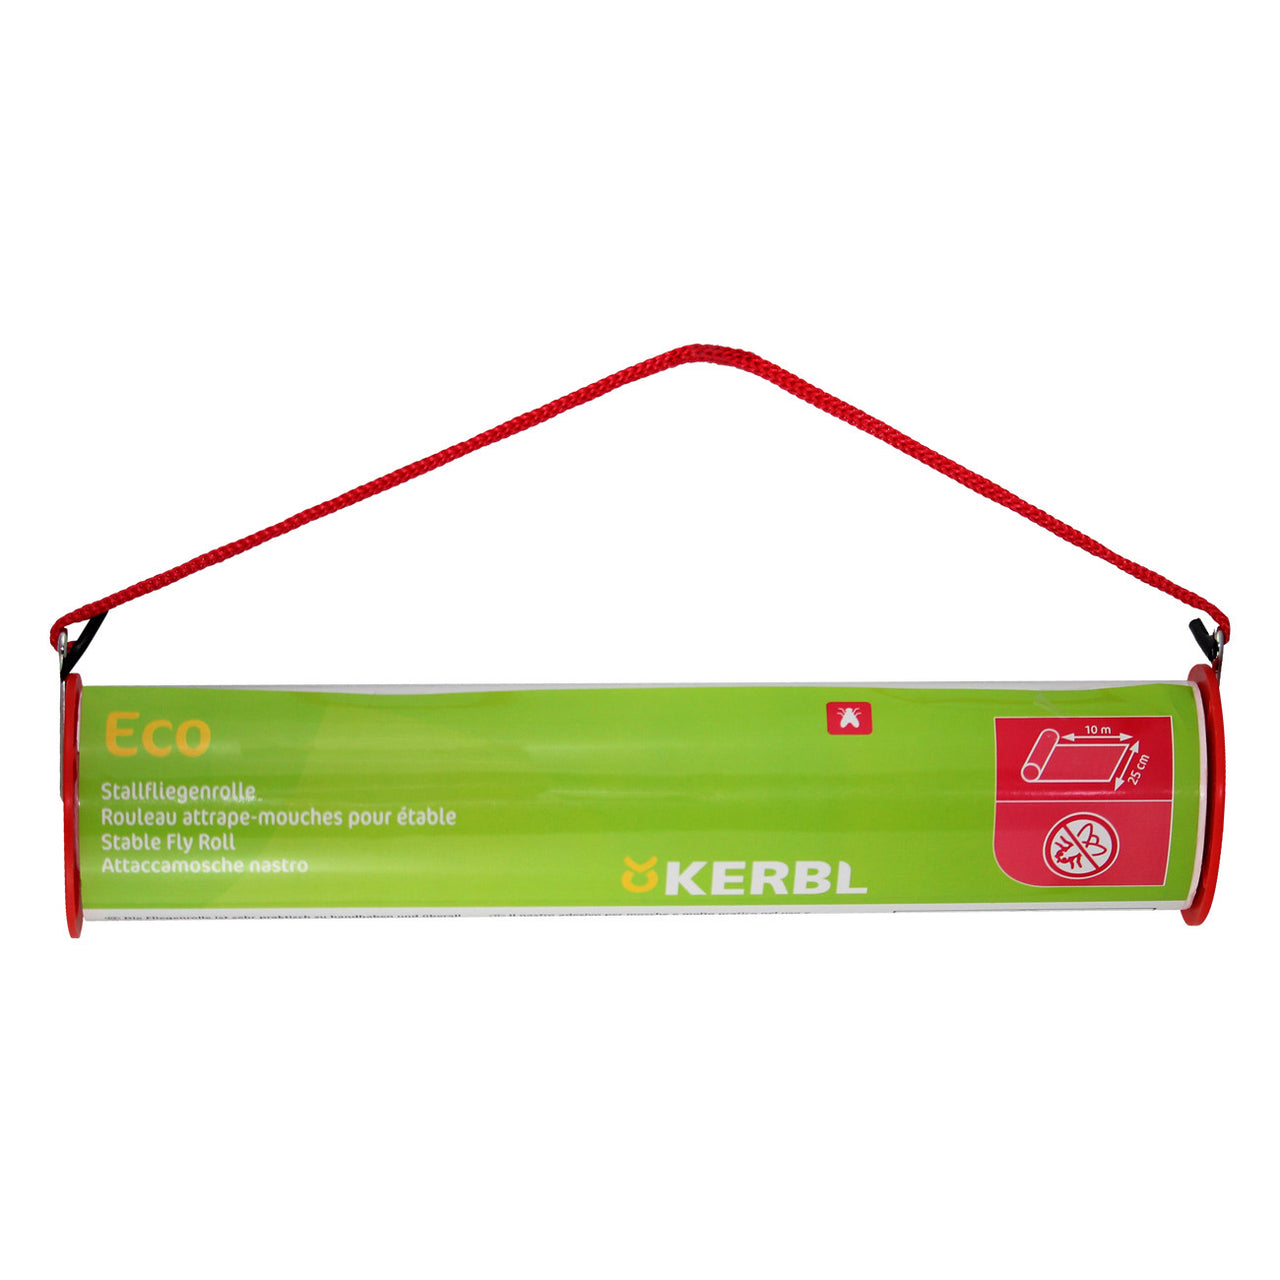 Kerbl Eco Stable Fly Roll (25Cm X 10M) - Insect Trapping Kerbl - Canada